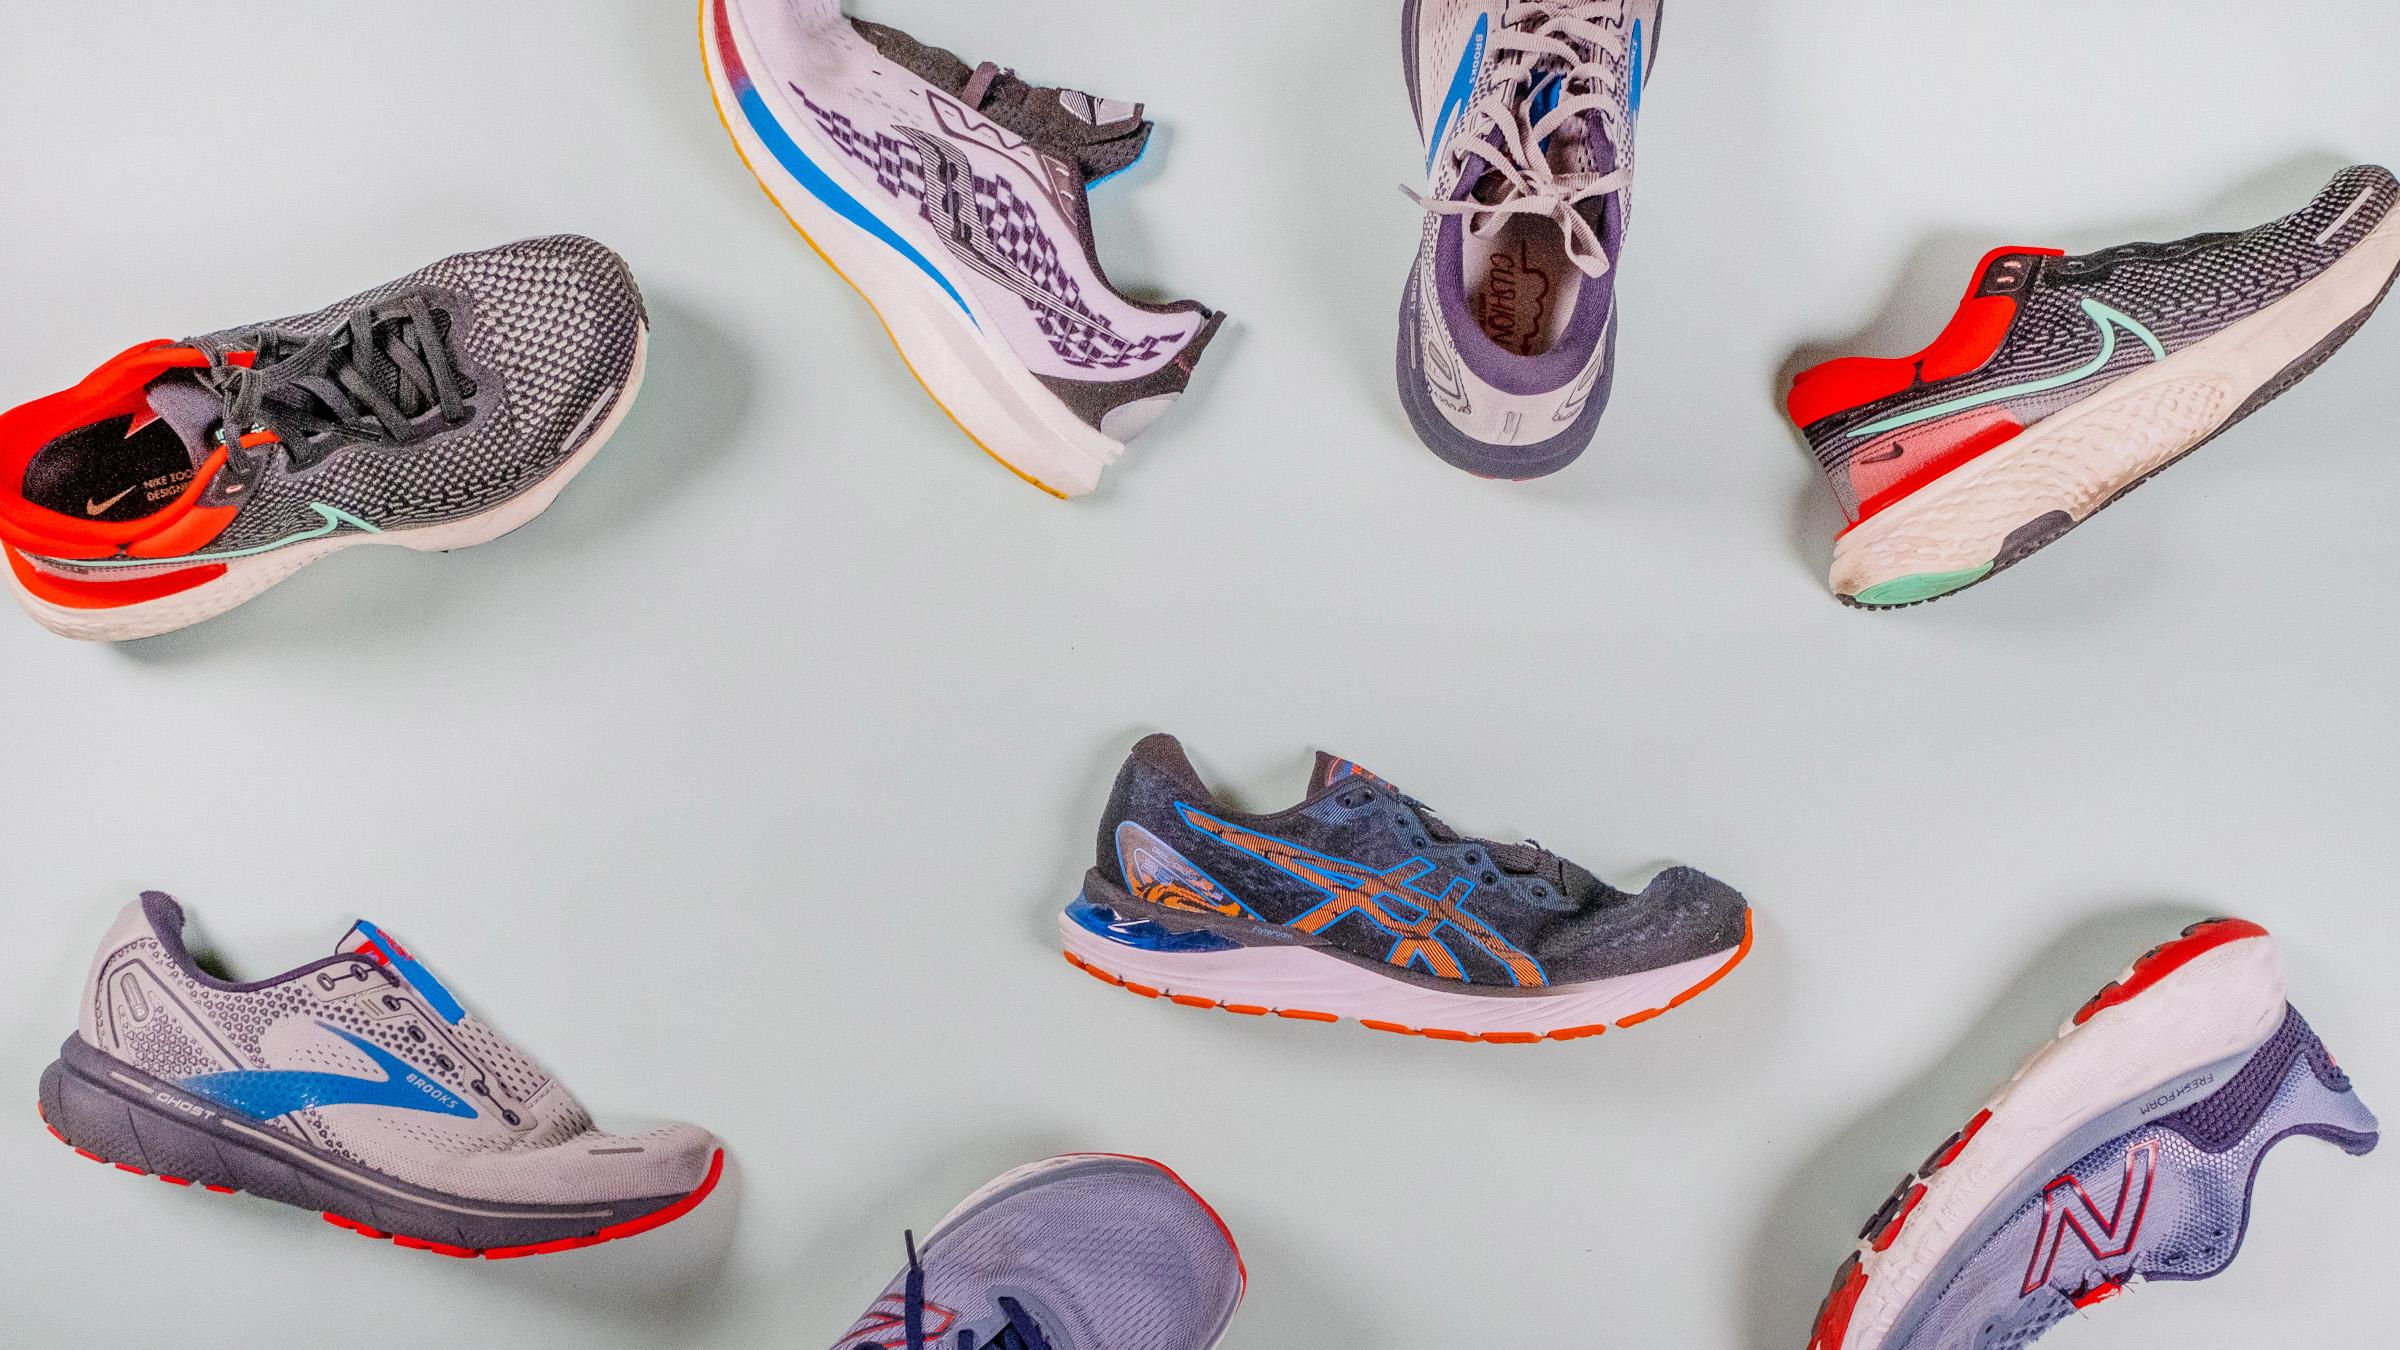 10 Best Long Distance Running Shoes in 2021